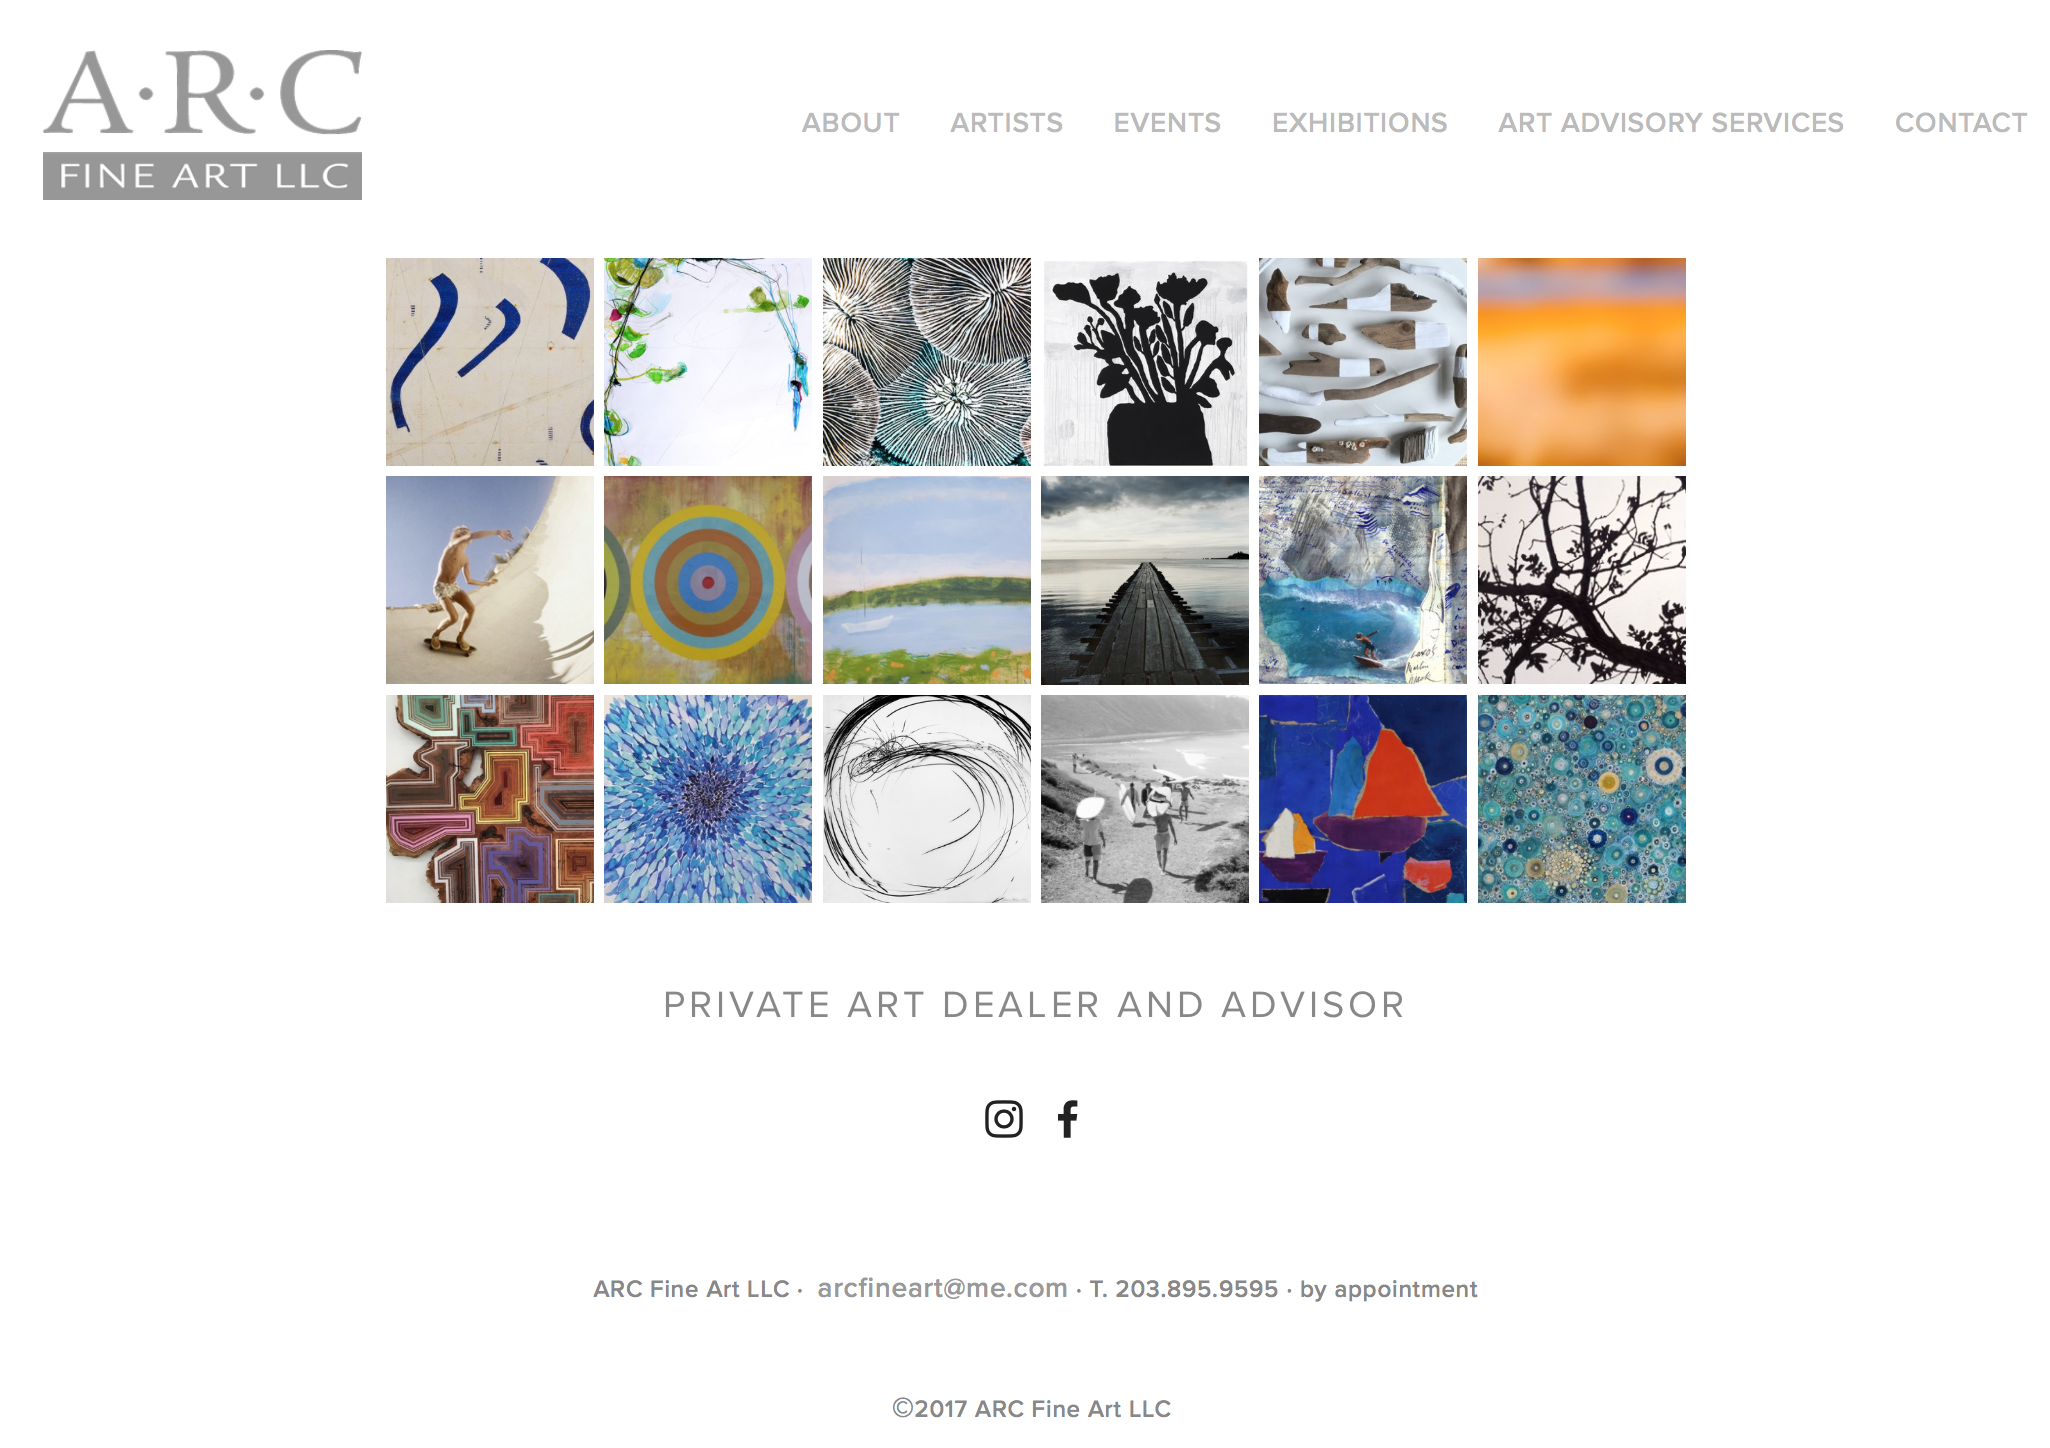 ARC Fine Art Website design and production  All printed material design and production